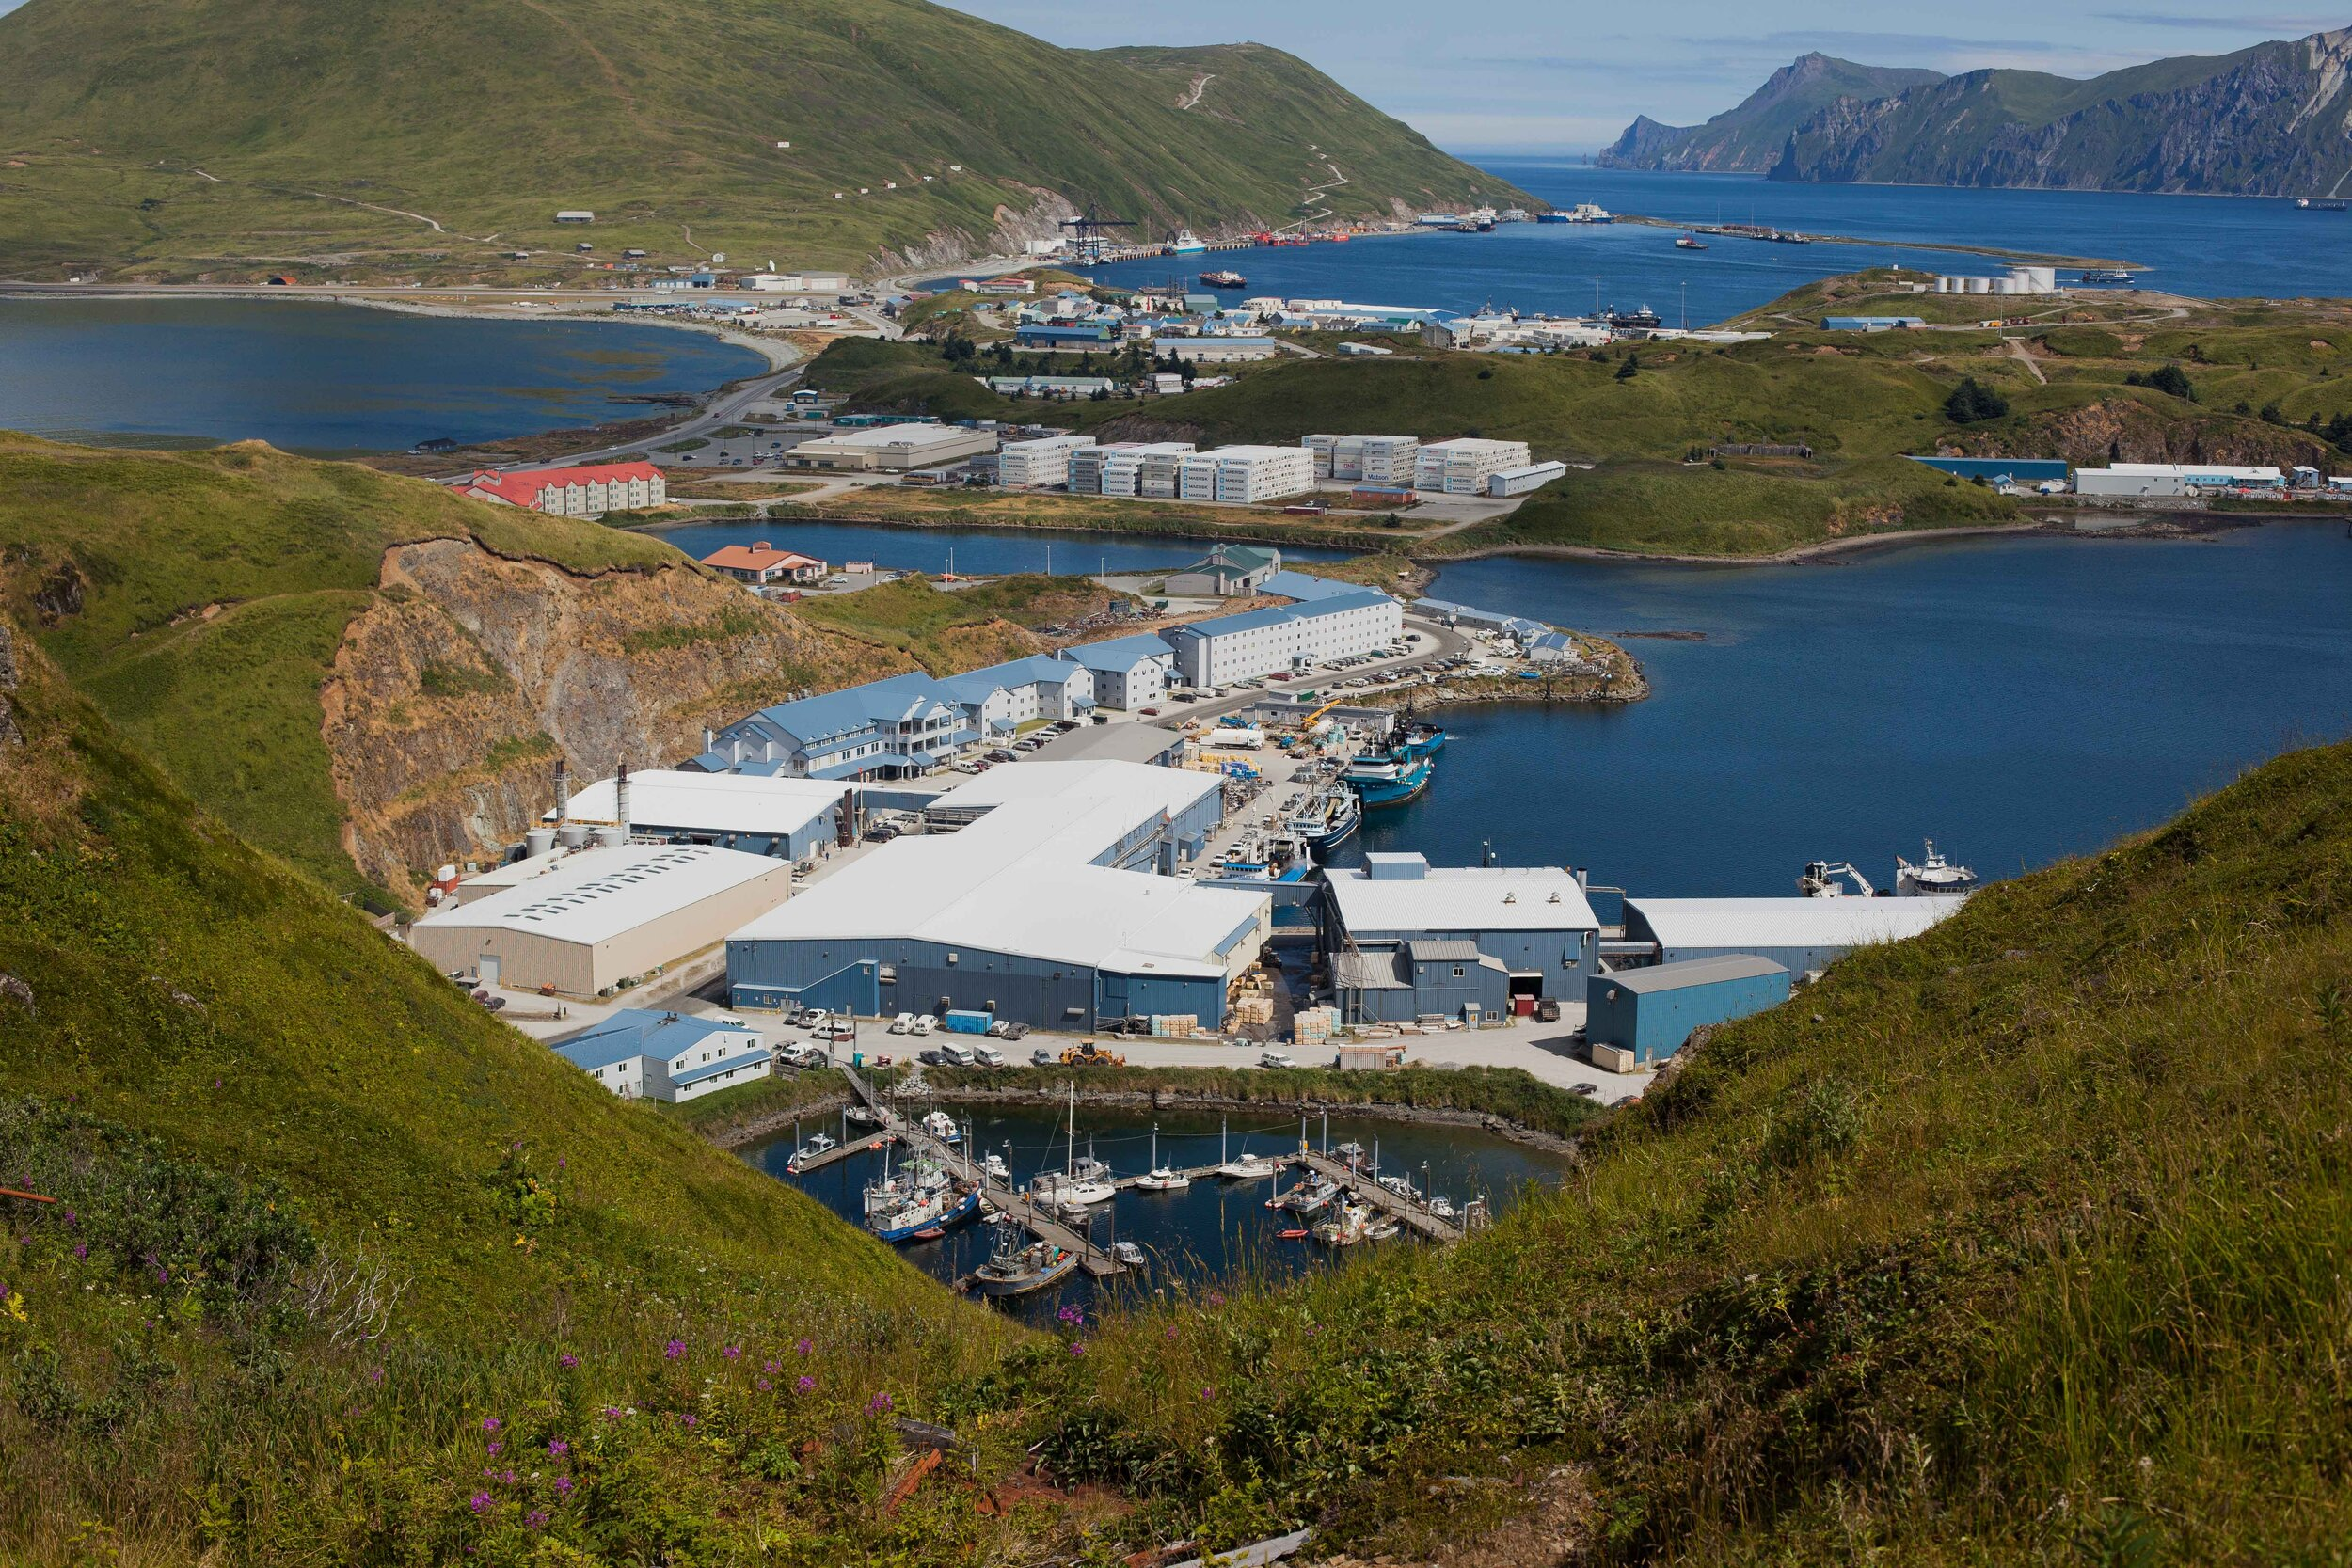 Dutch Harbor has areas with canneries and commercial buildings, but the islands and landscape around the community are still wonderfully raw and pristine. The imprint of the community is relatively small.